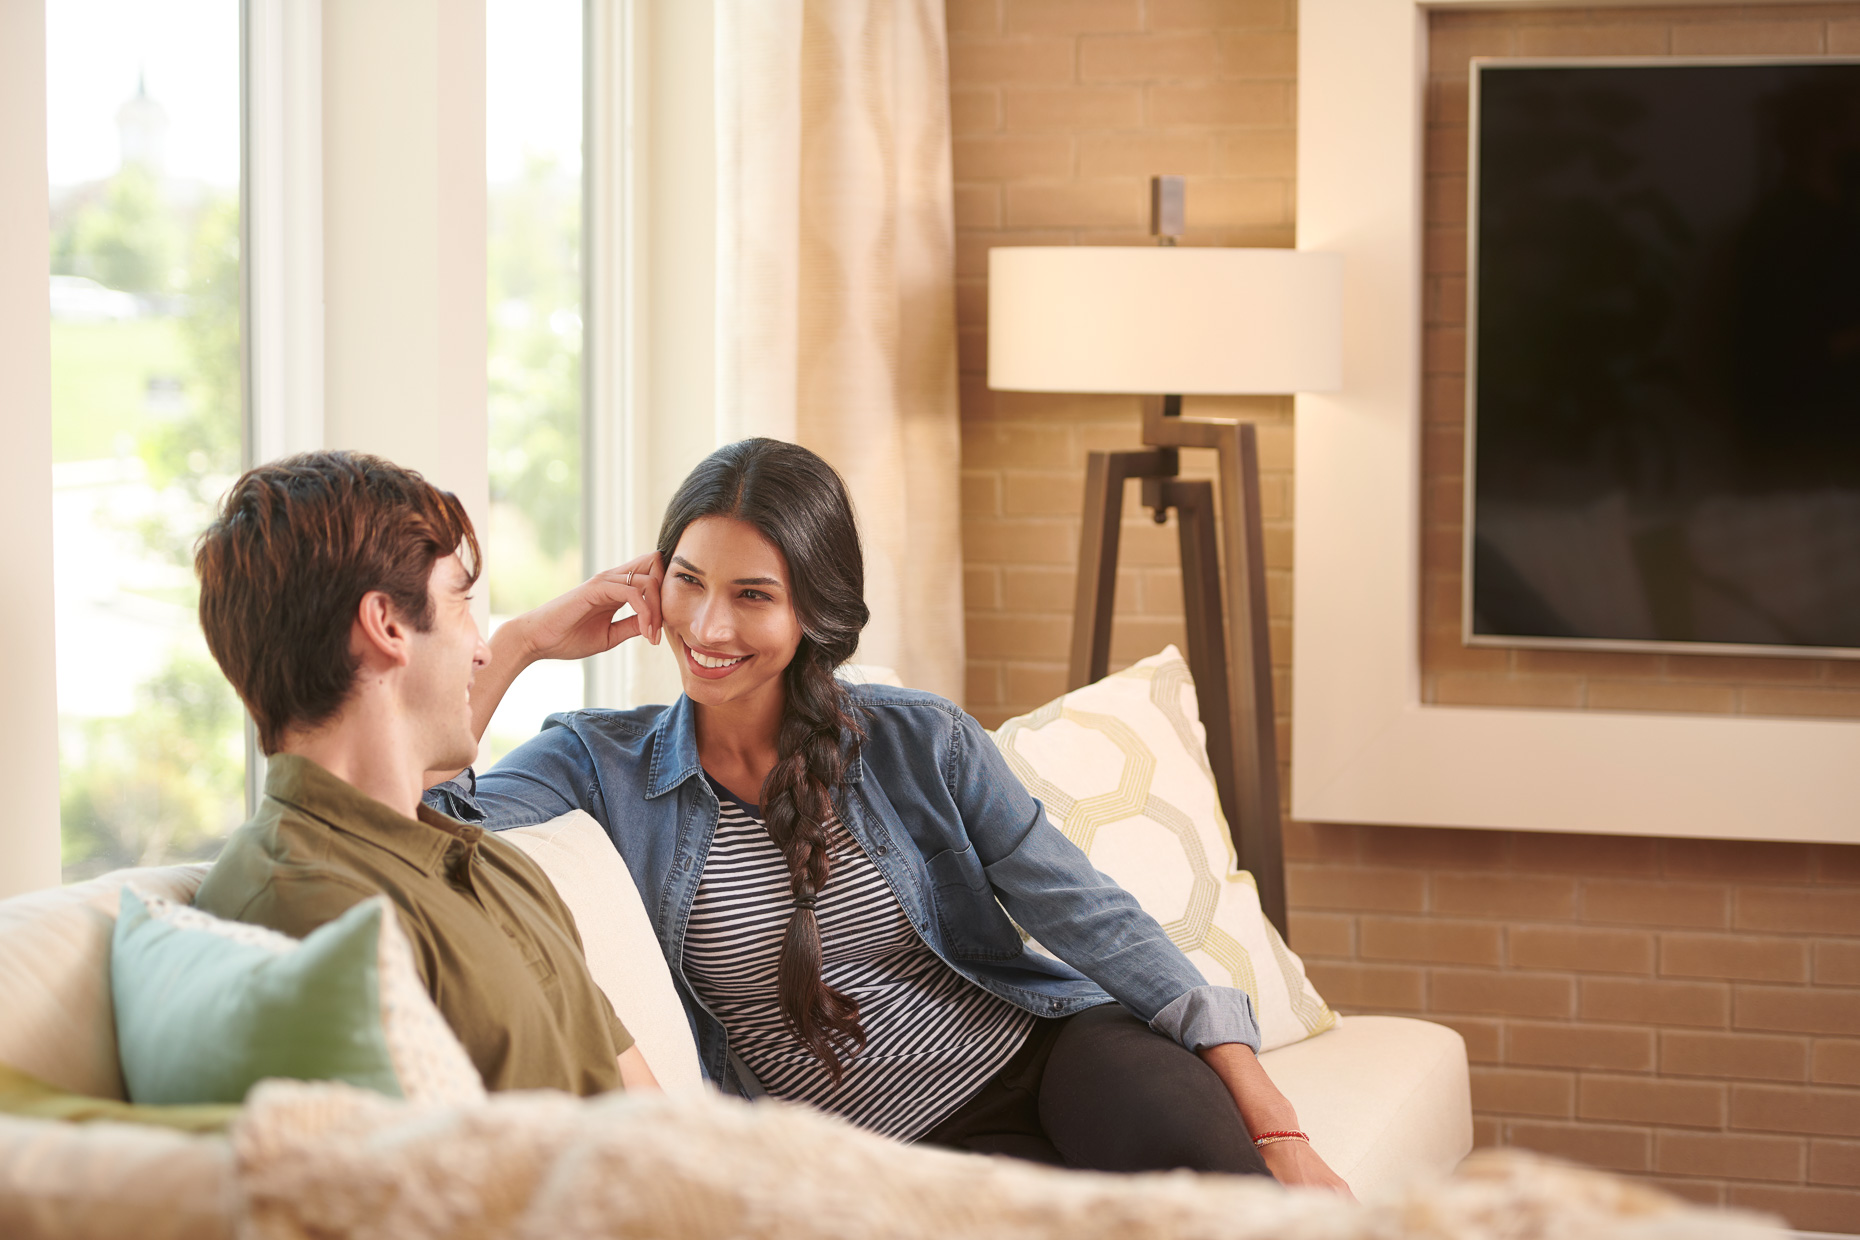 Couple on Couch | Toll Brothers Commercial Photographer